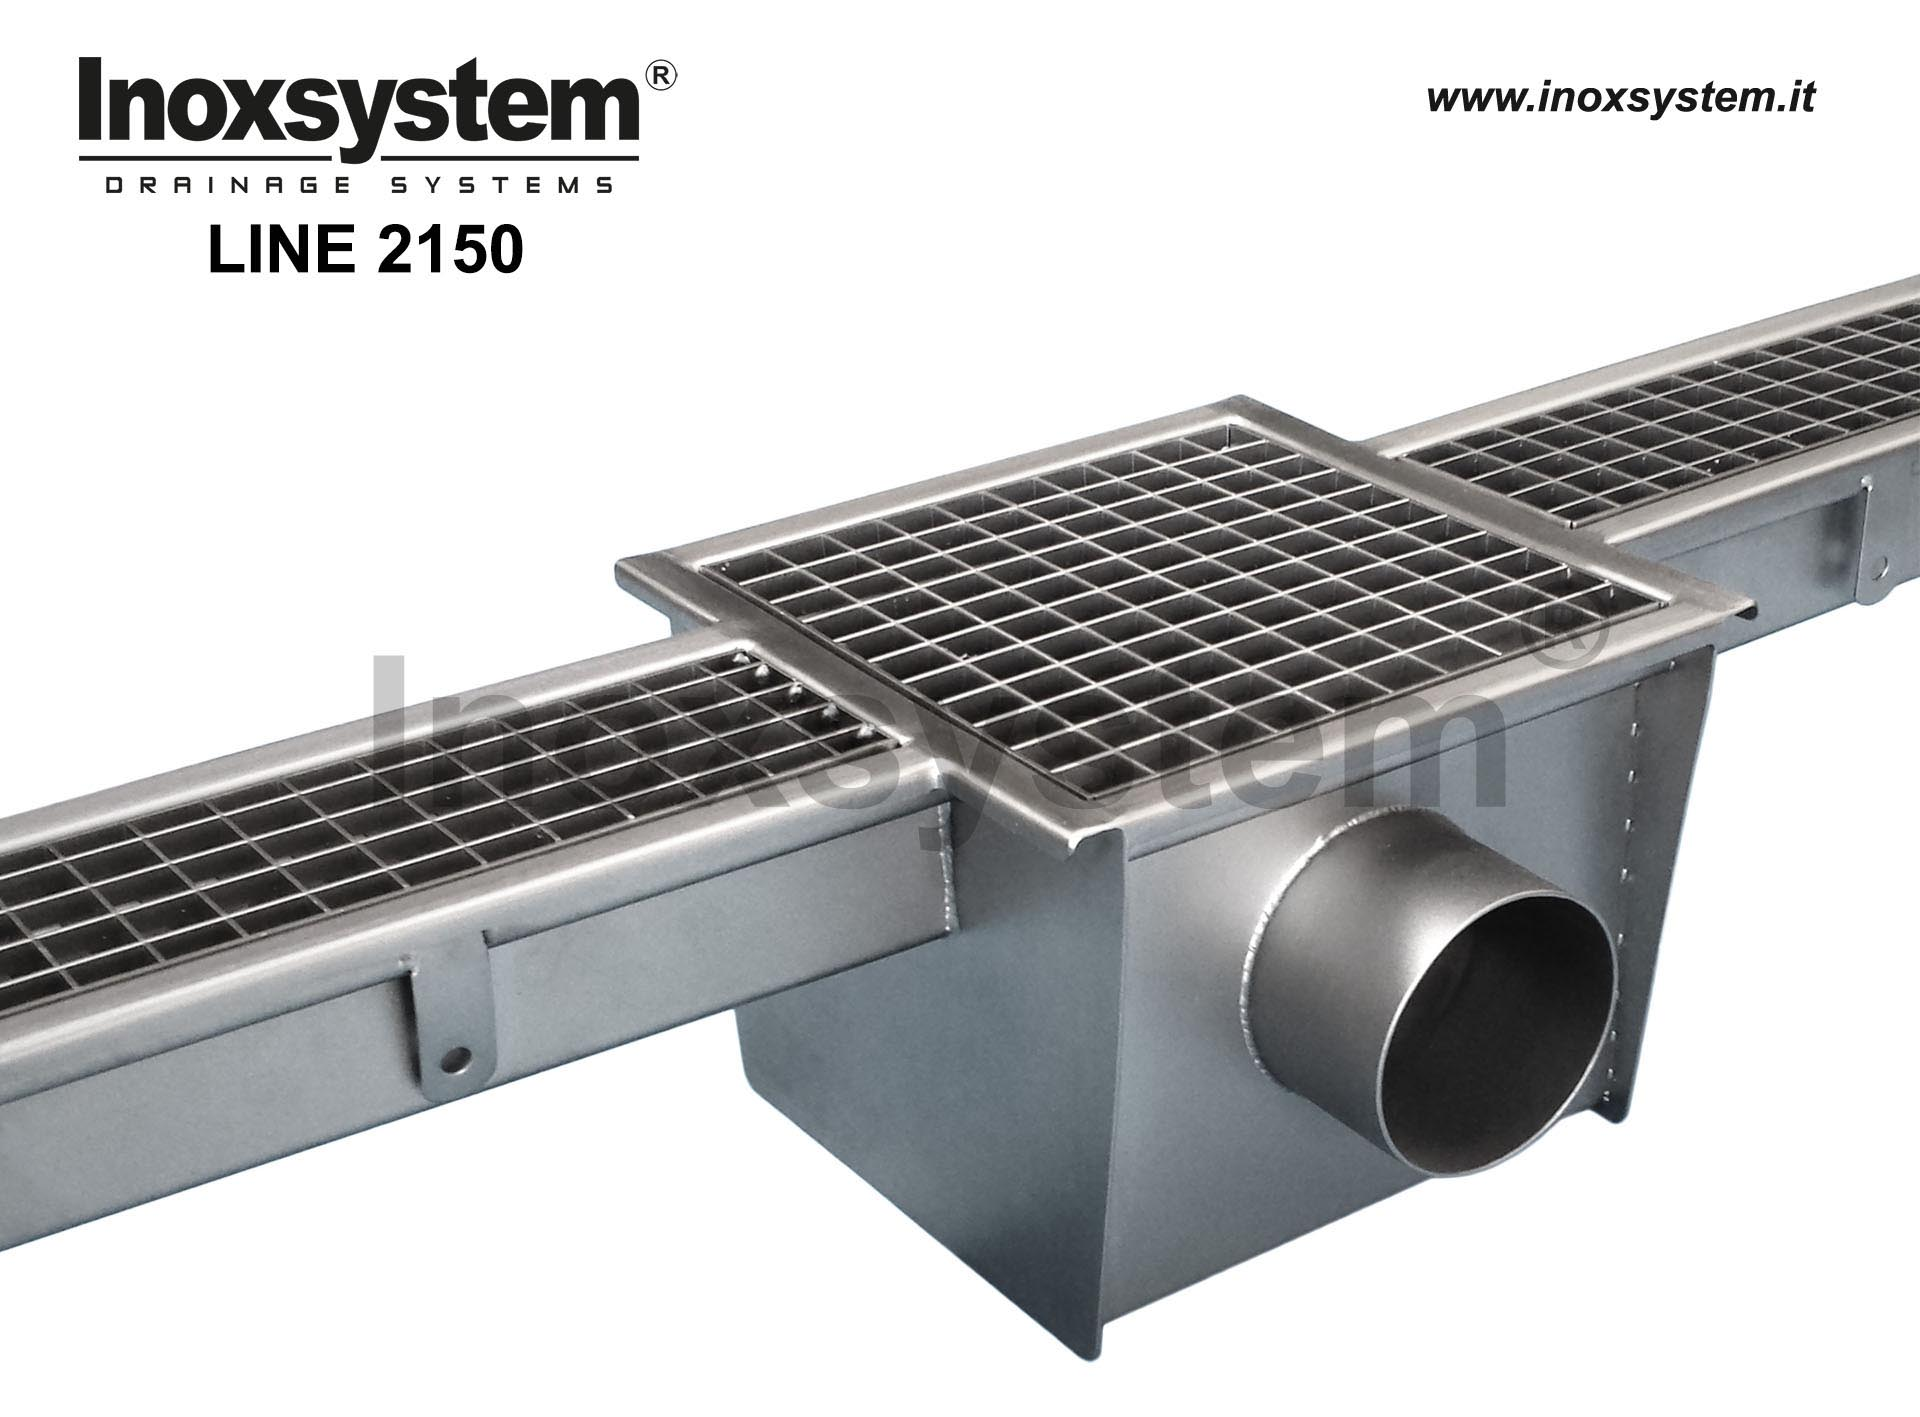 Standard stainless steel grating channel with siphoned outlet and grating cover